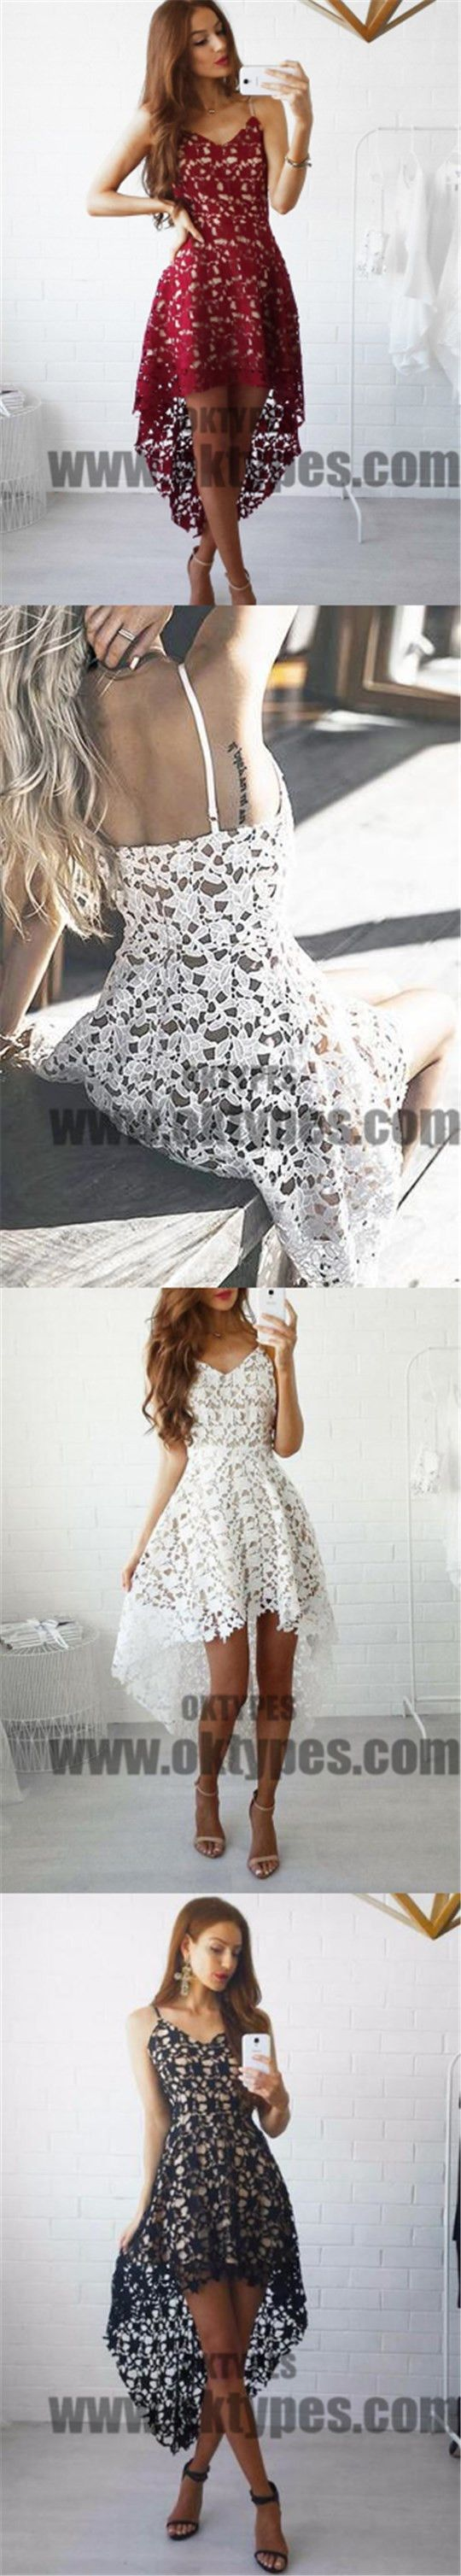 homecoming dress asymmetrical lace short prom dress party